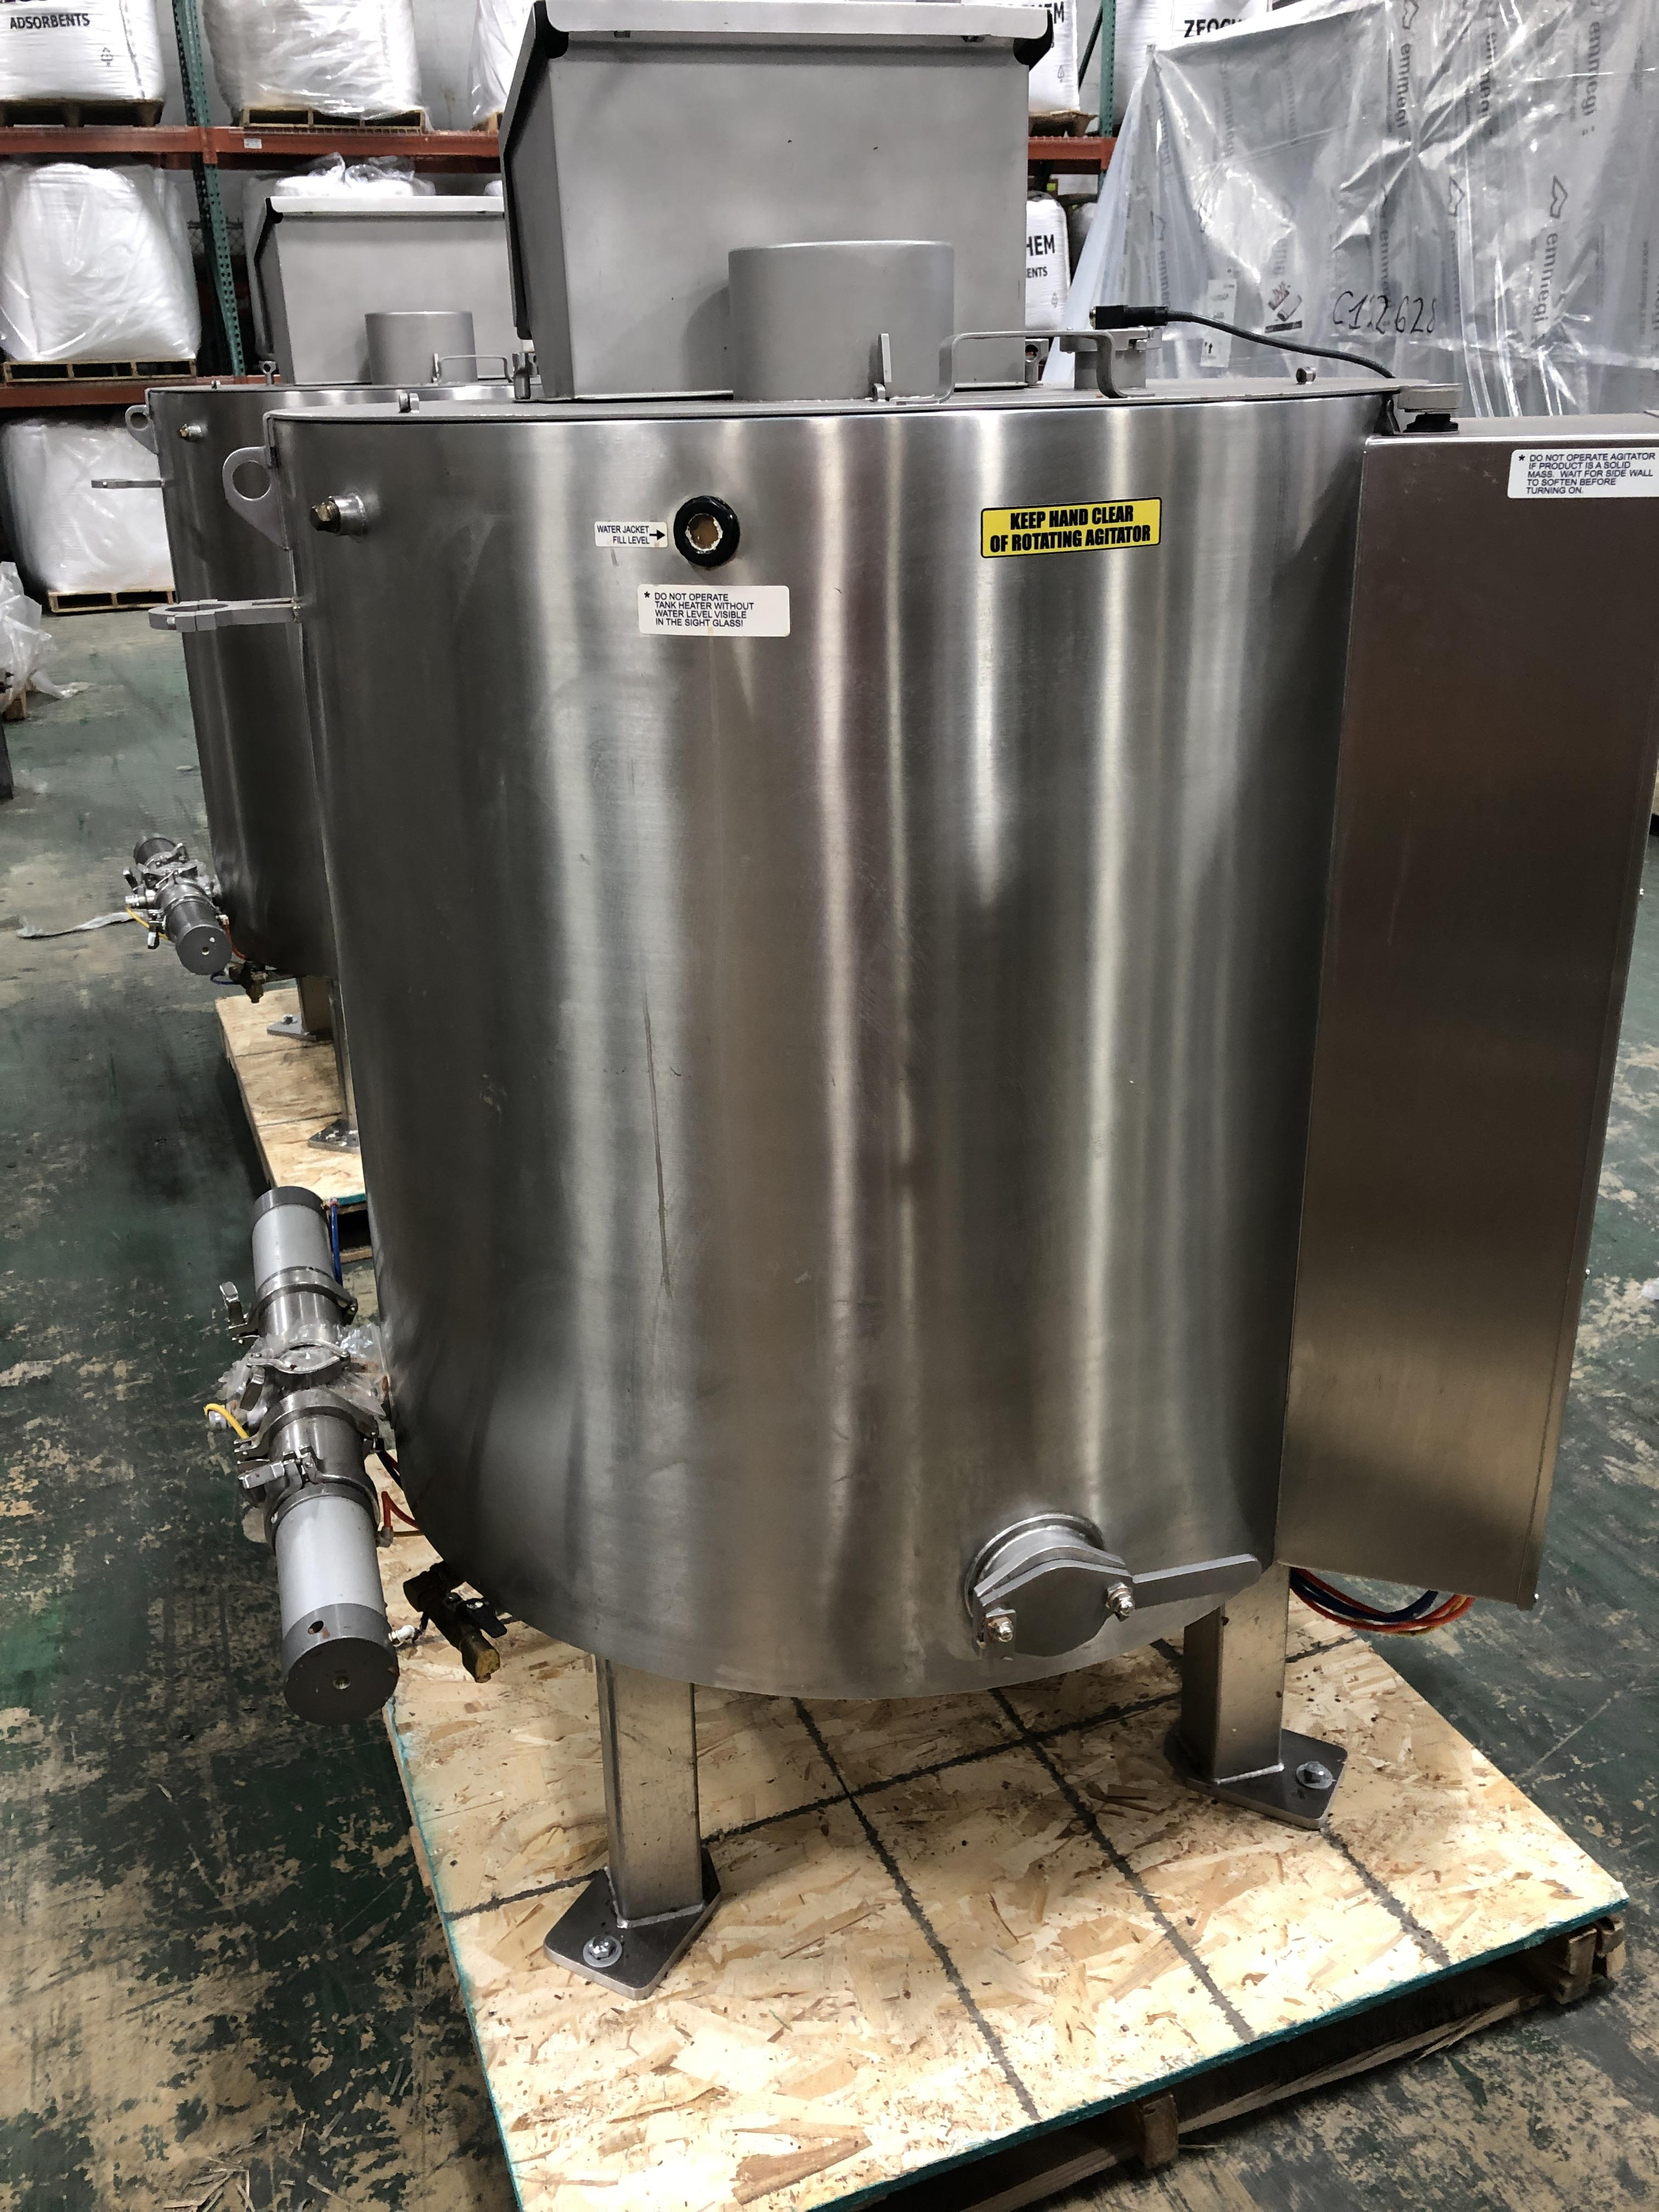 Lot 38 - Savage Stainless Steel 1250-lb Chocolate Melter, model 0974-36, with PLC touchscreen controls,